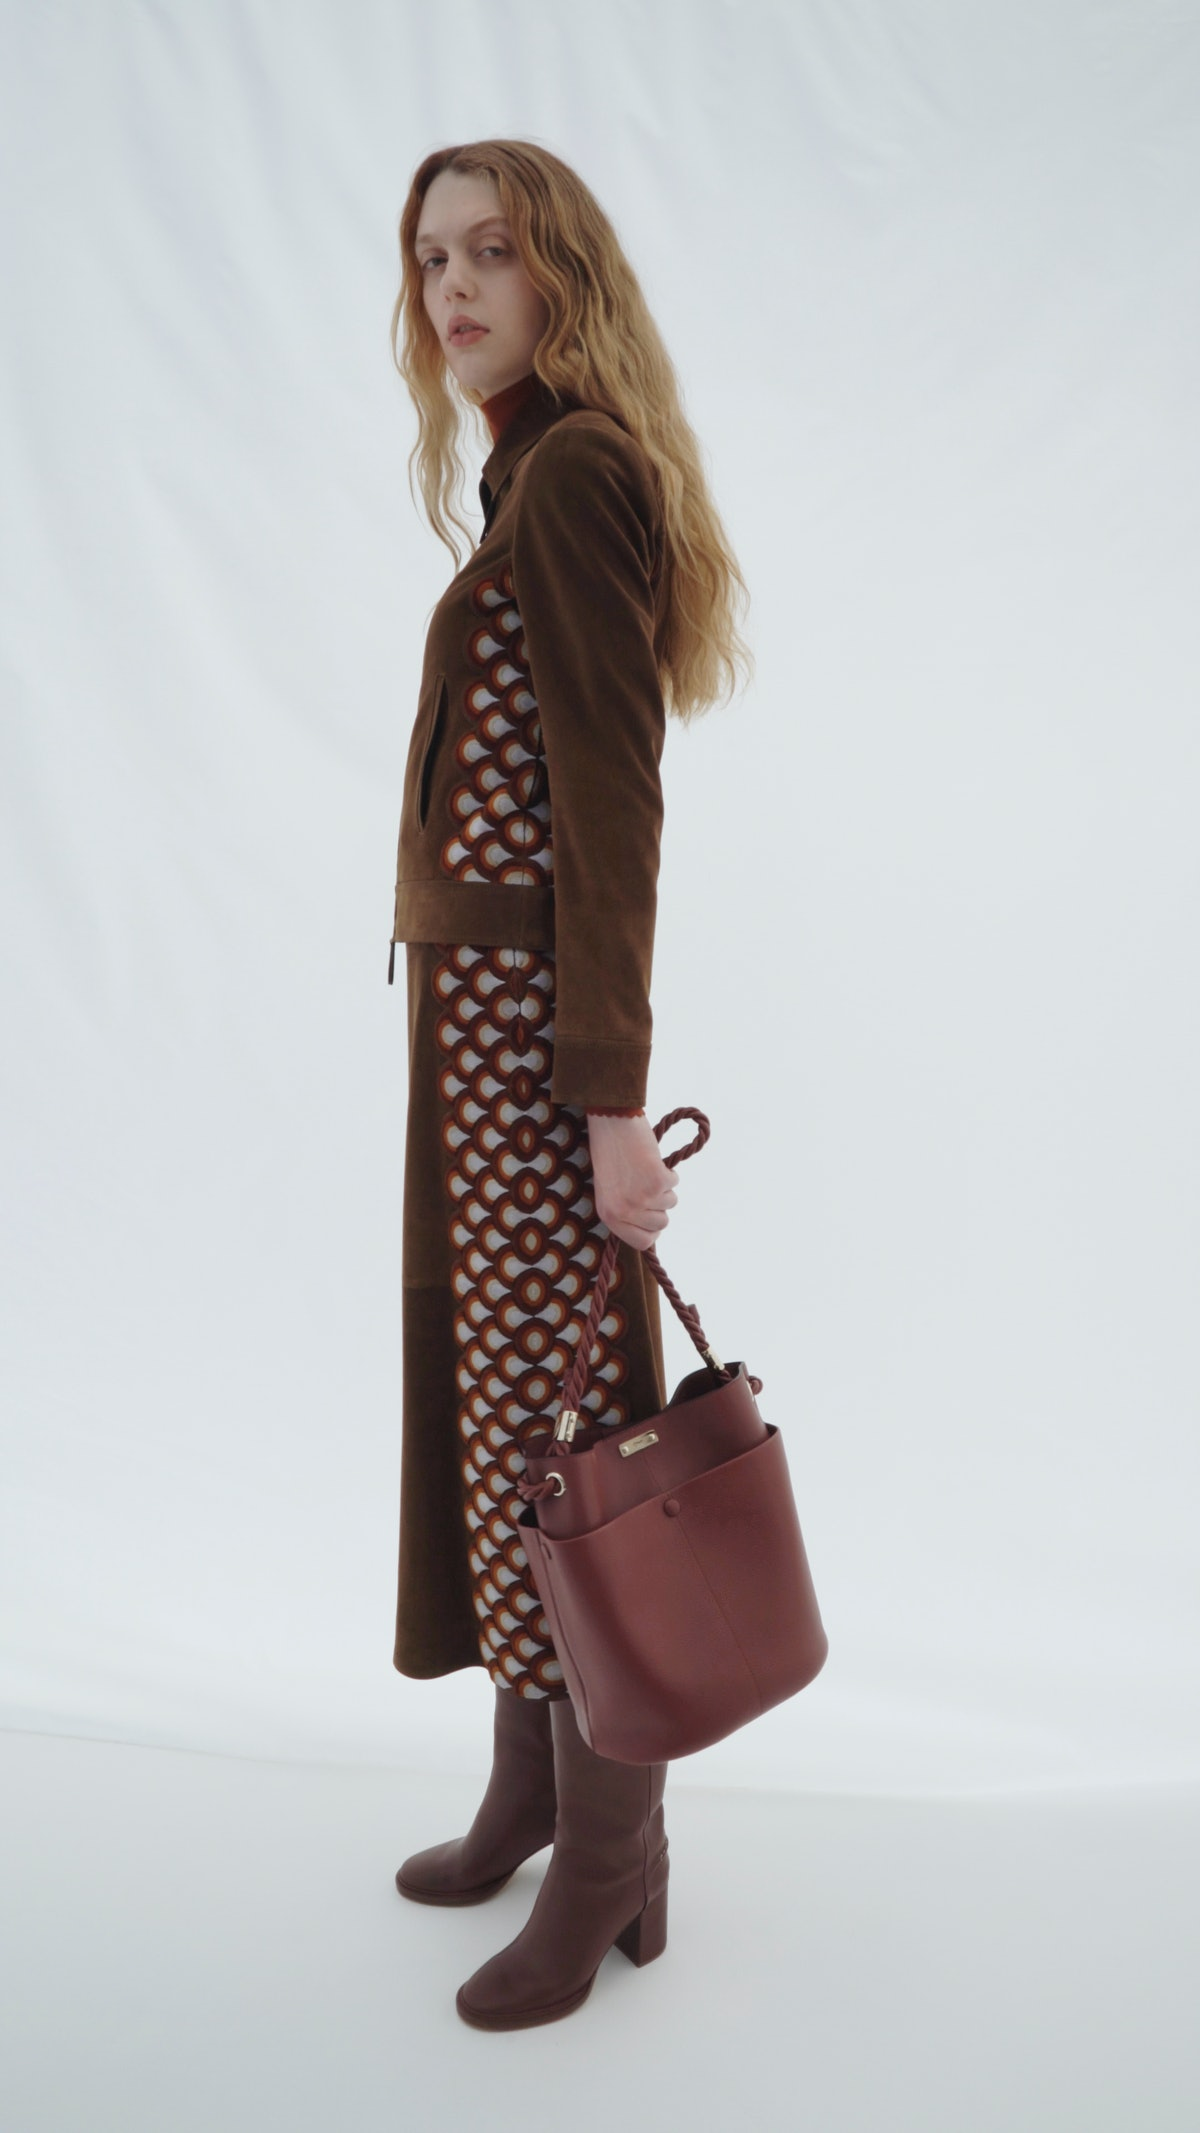 model in chloé dress with bag